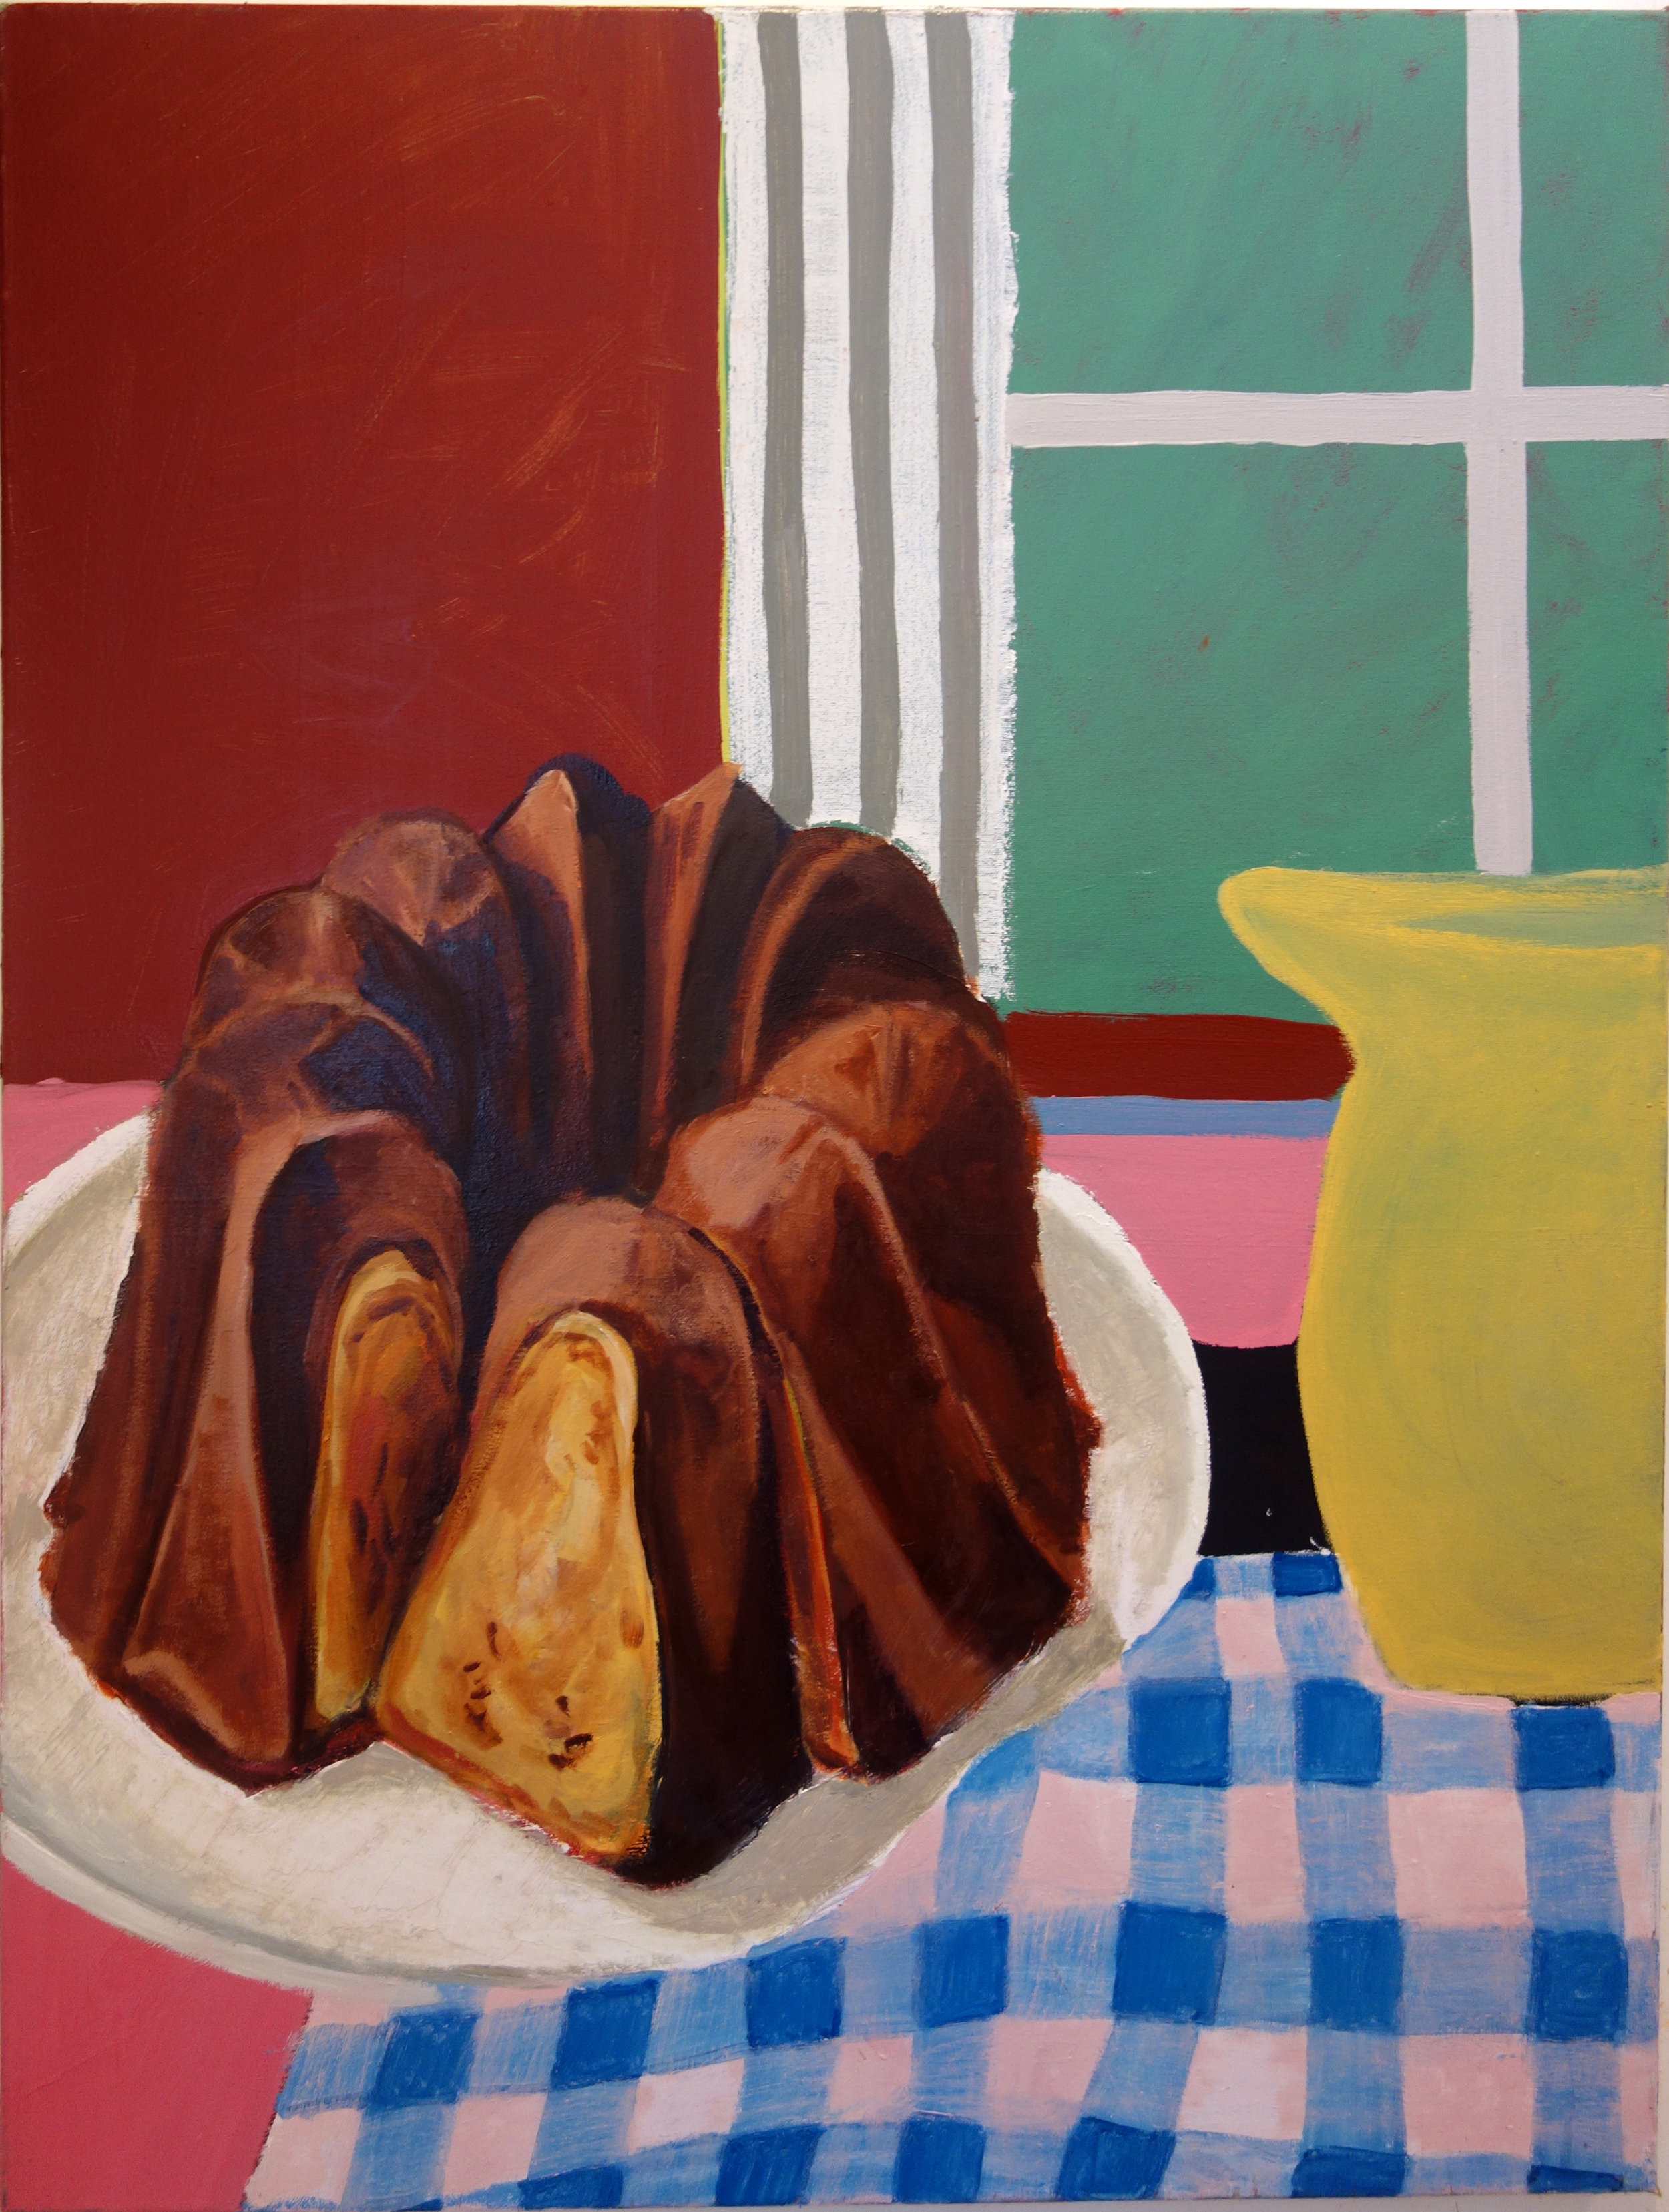 Bunt Cake Painting  30 x 40 IN  Oil on canvas